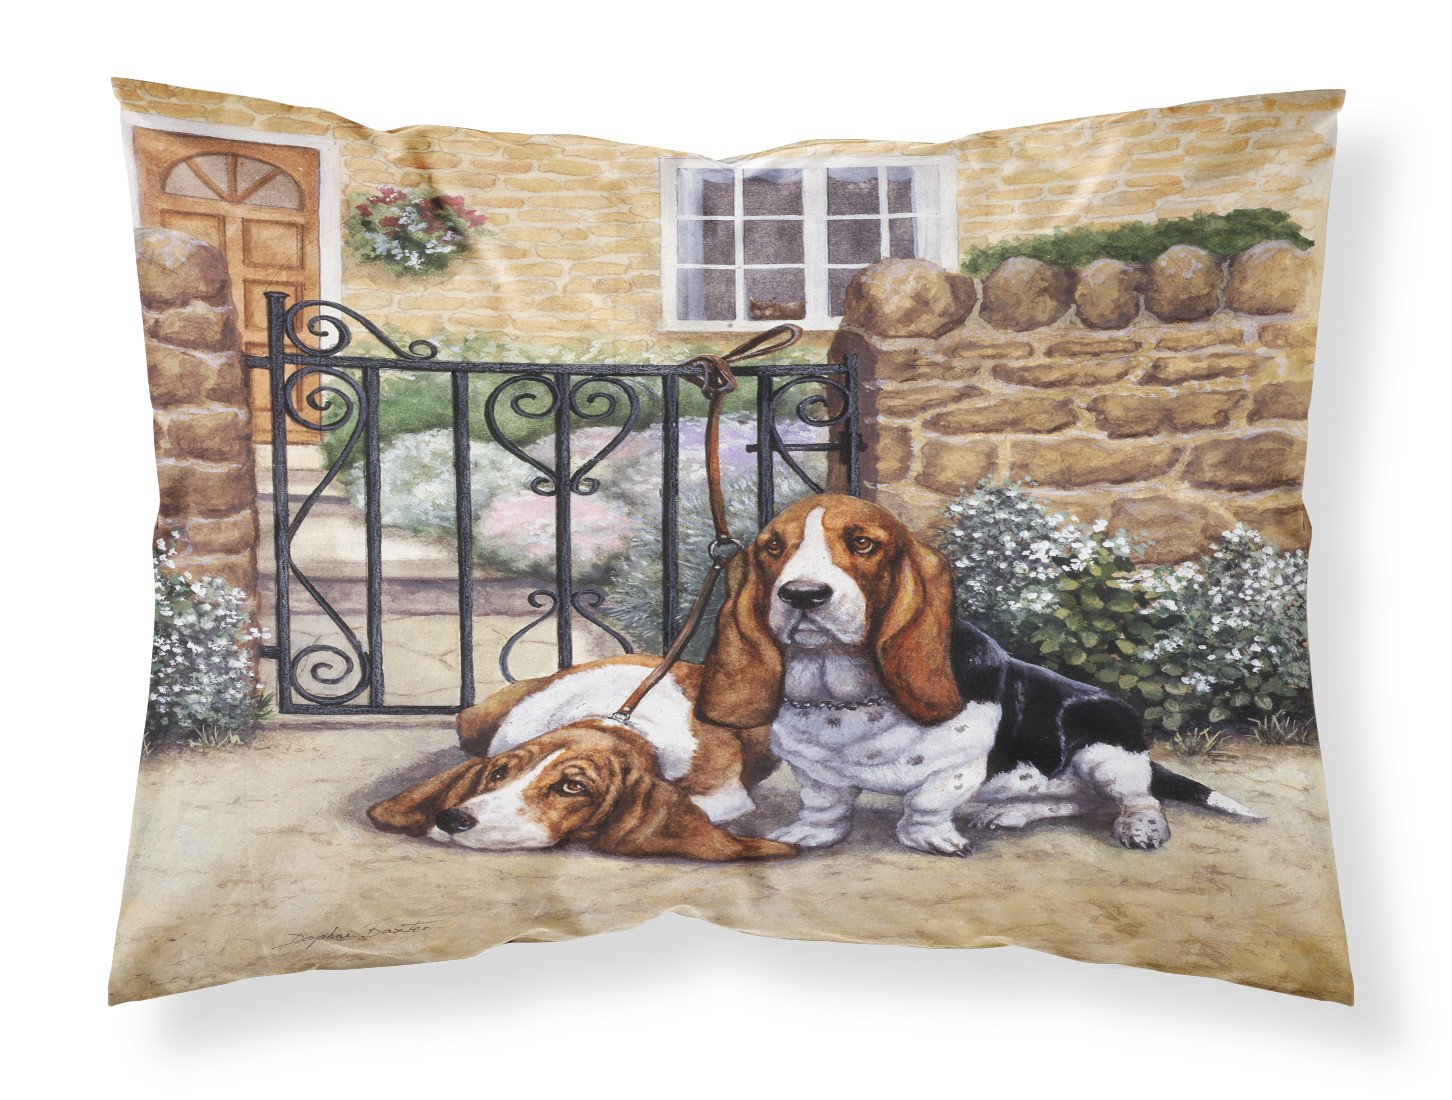 Basset Hound at the gate Fabric Standard Pillowcase BDBA0312PILLOWCASE by Caroline's Treasures